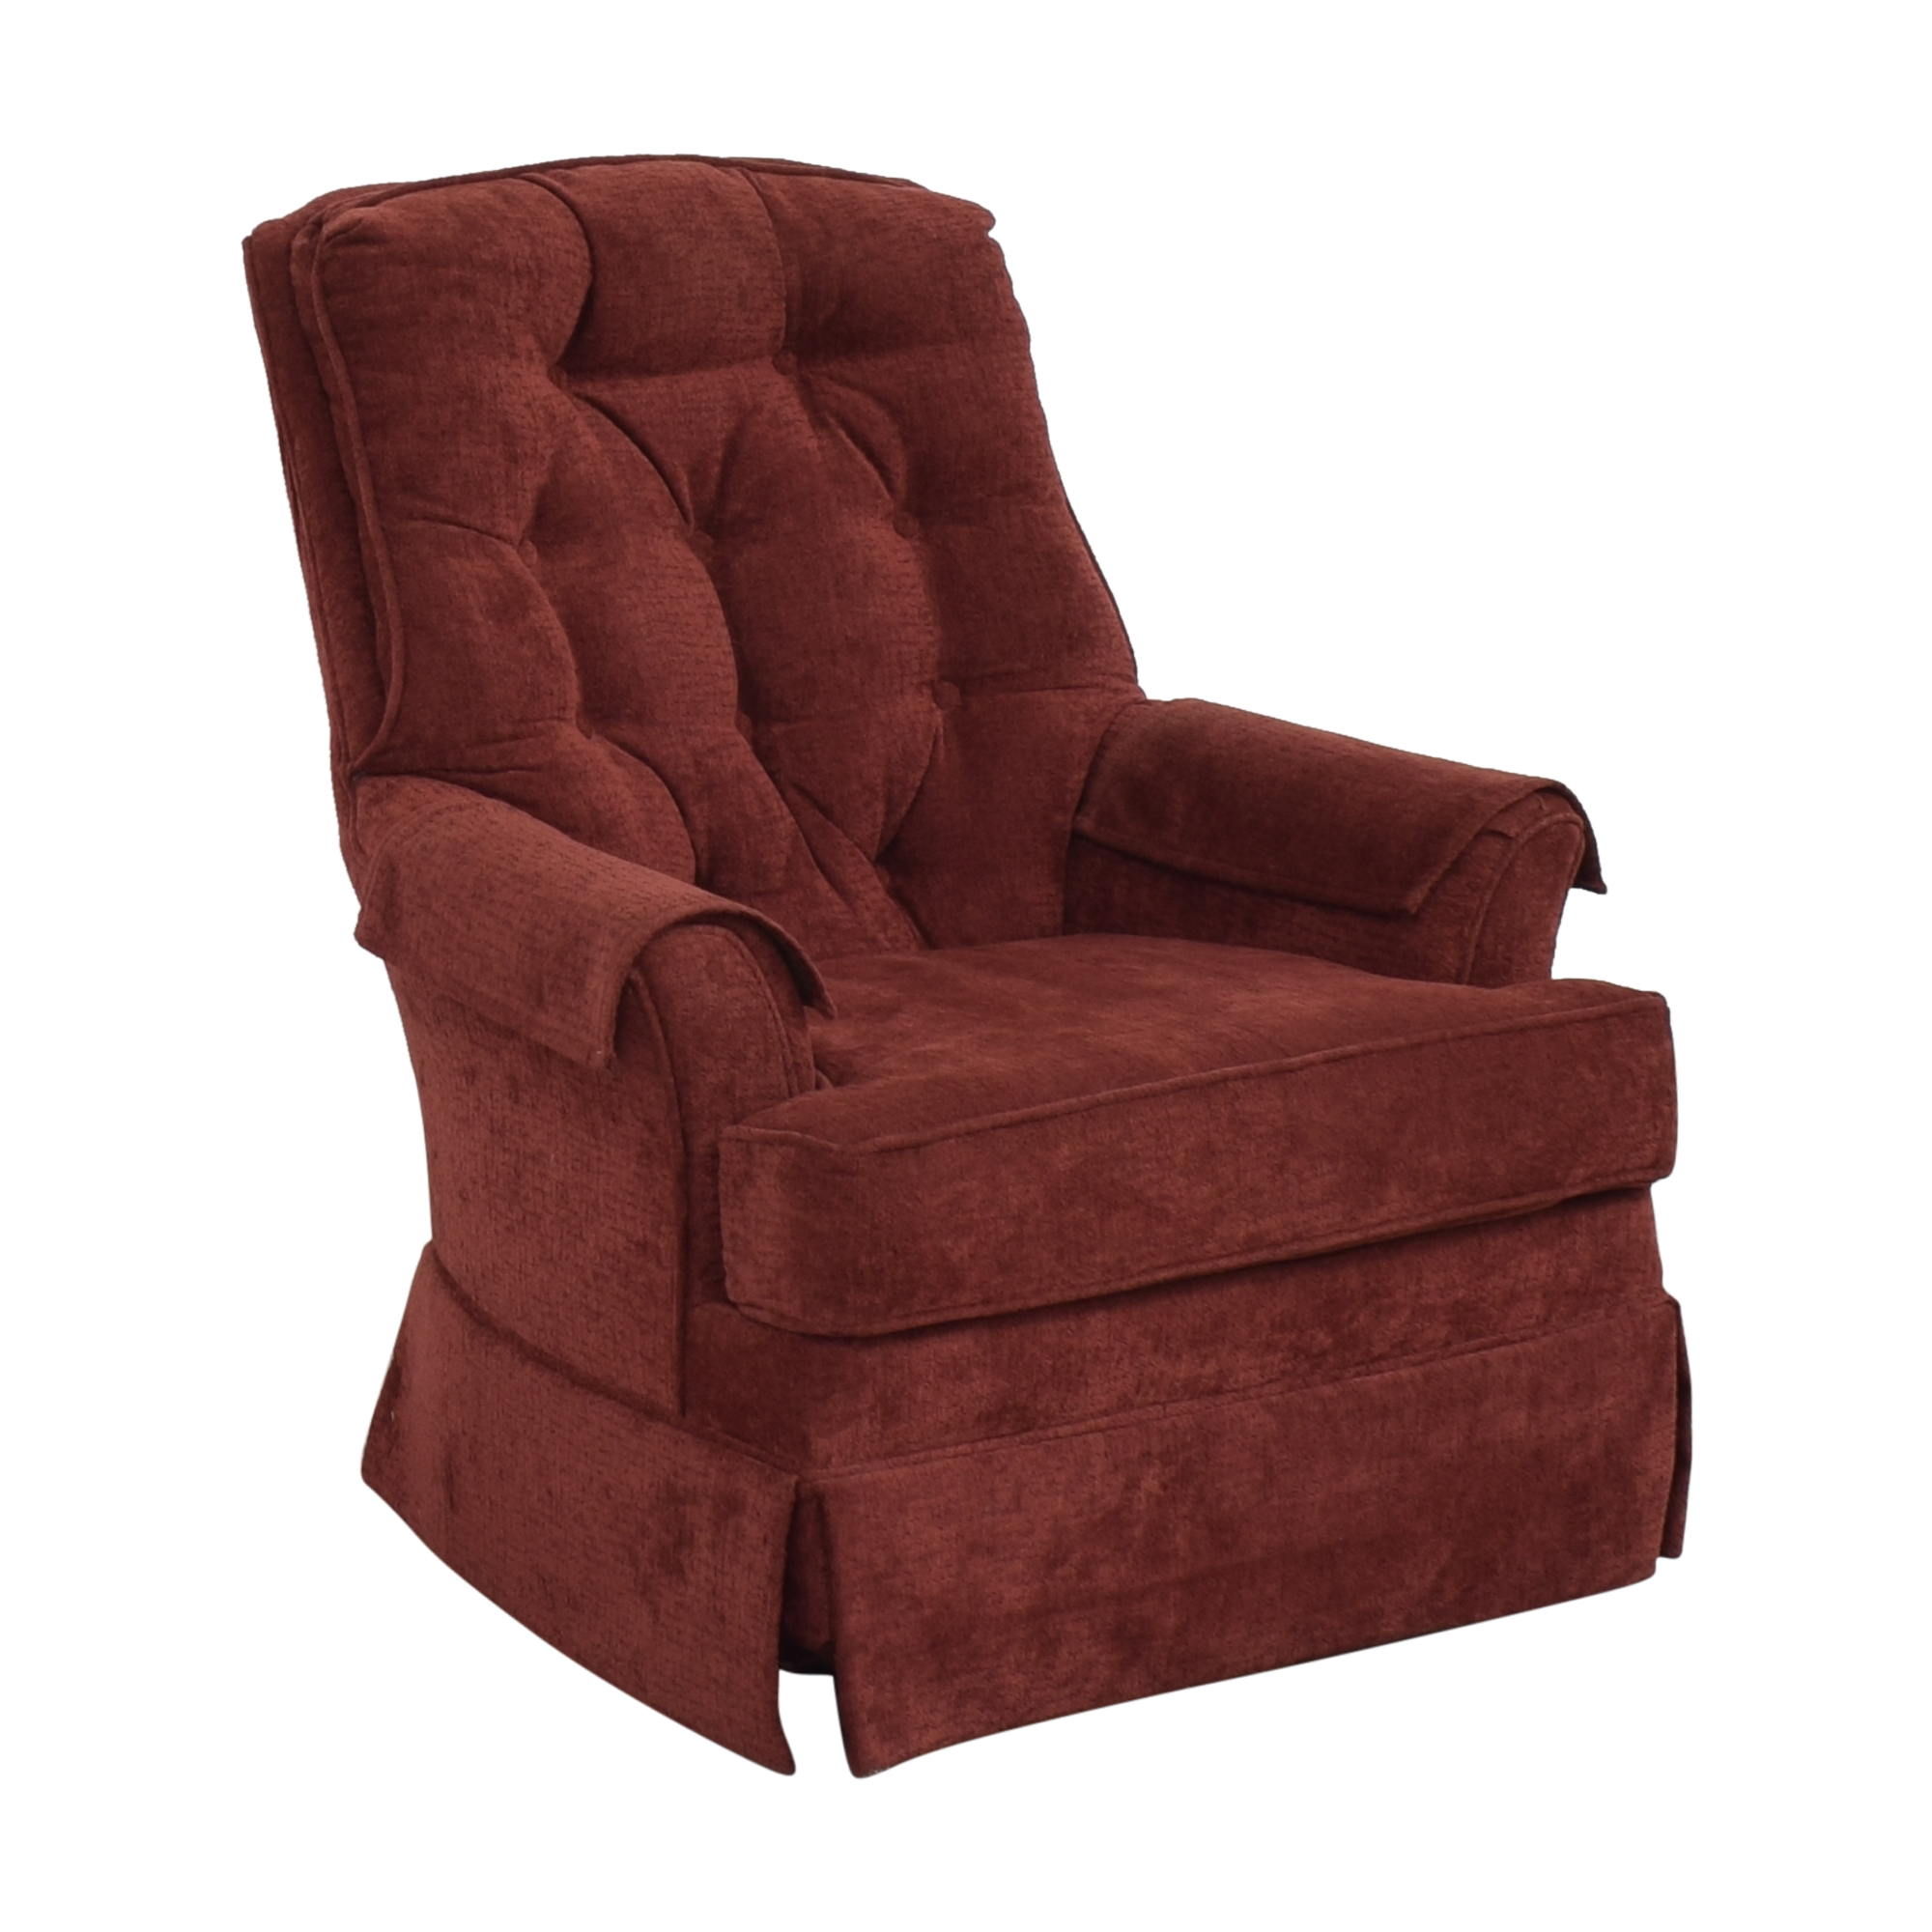 Rowe Furniture Rowe Furniture Tufted Swivel Chair dimensions